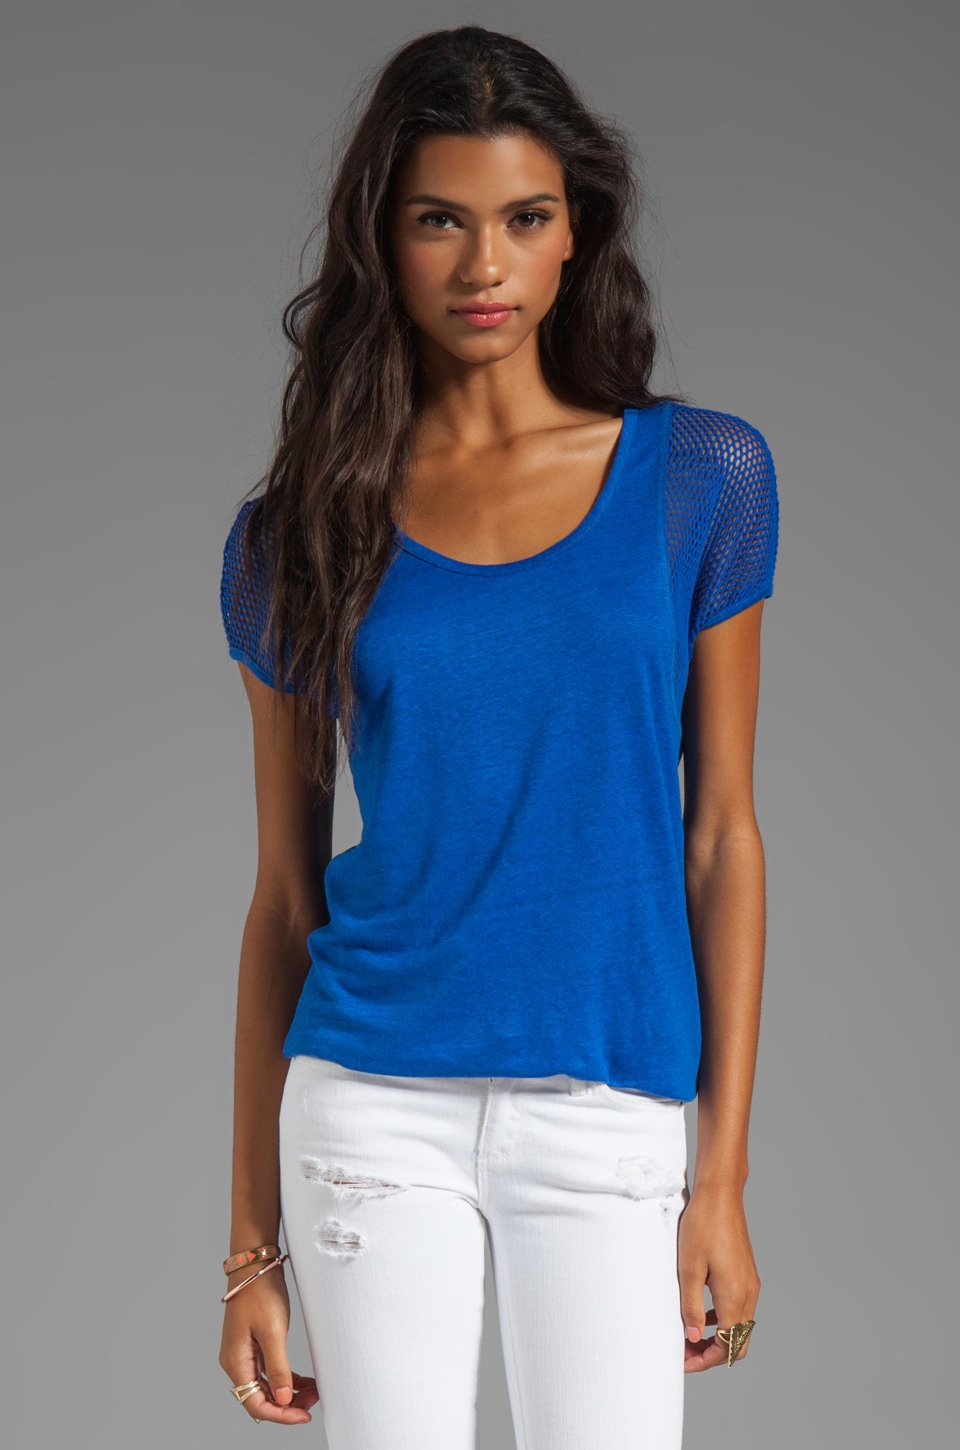 Marc by Marc Jacobs Texture Tee Linen Top in Rich Royal